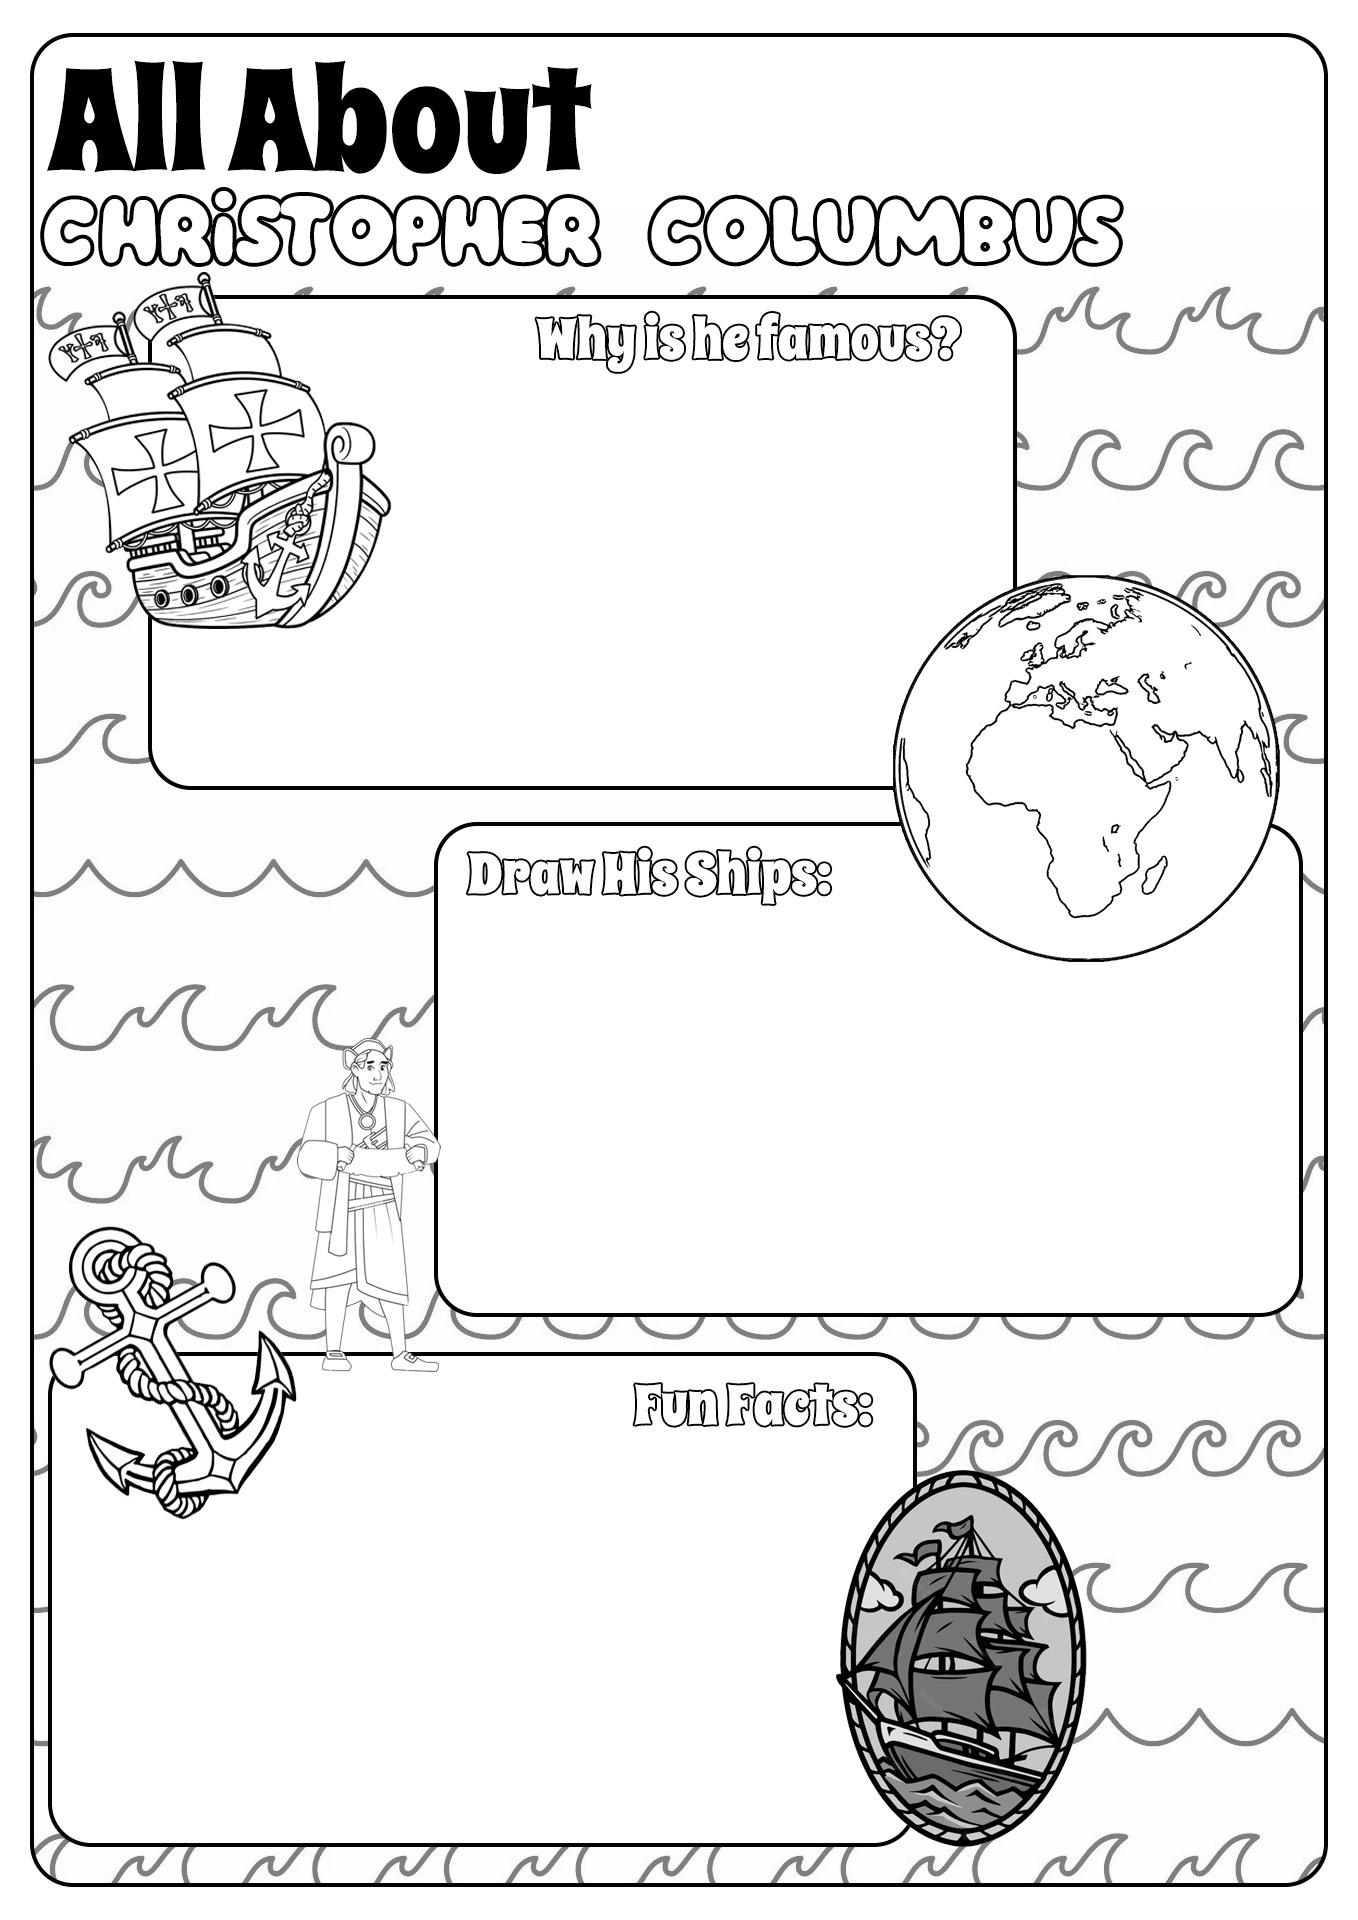 13 Best Images of Christopher Columbus Kindergarten